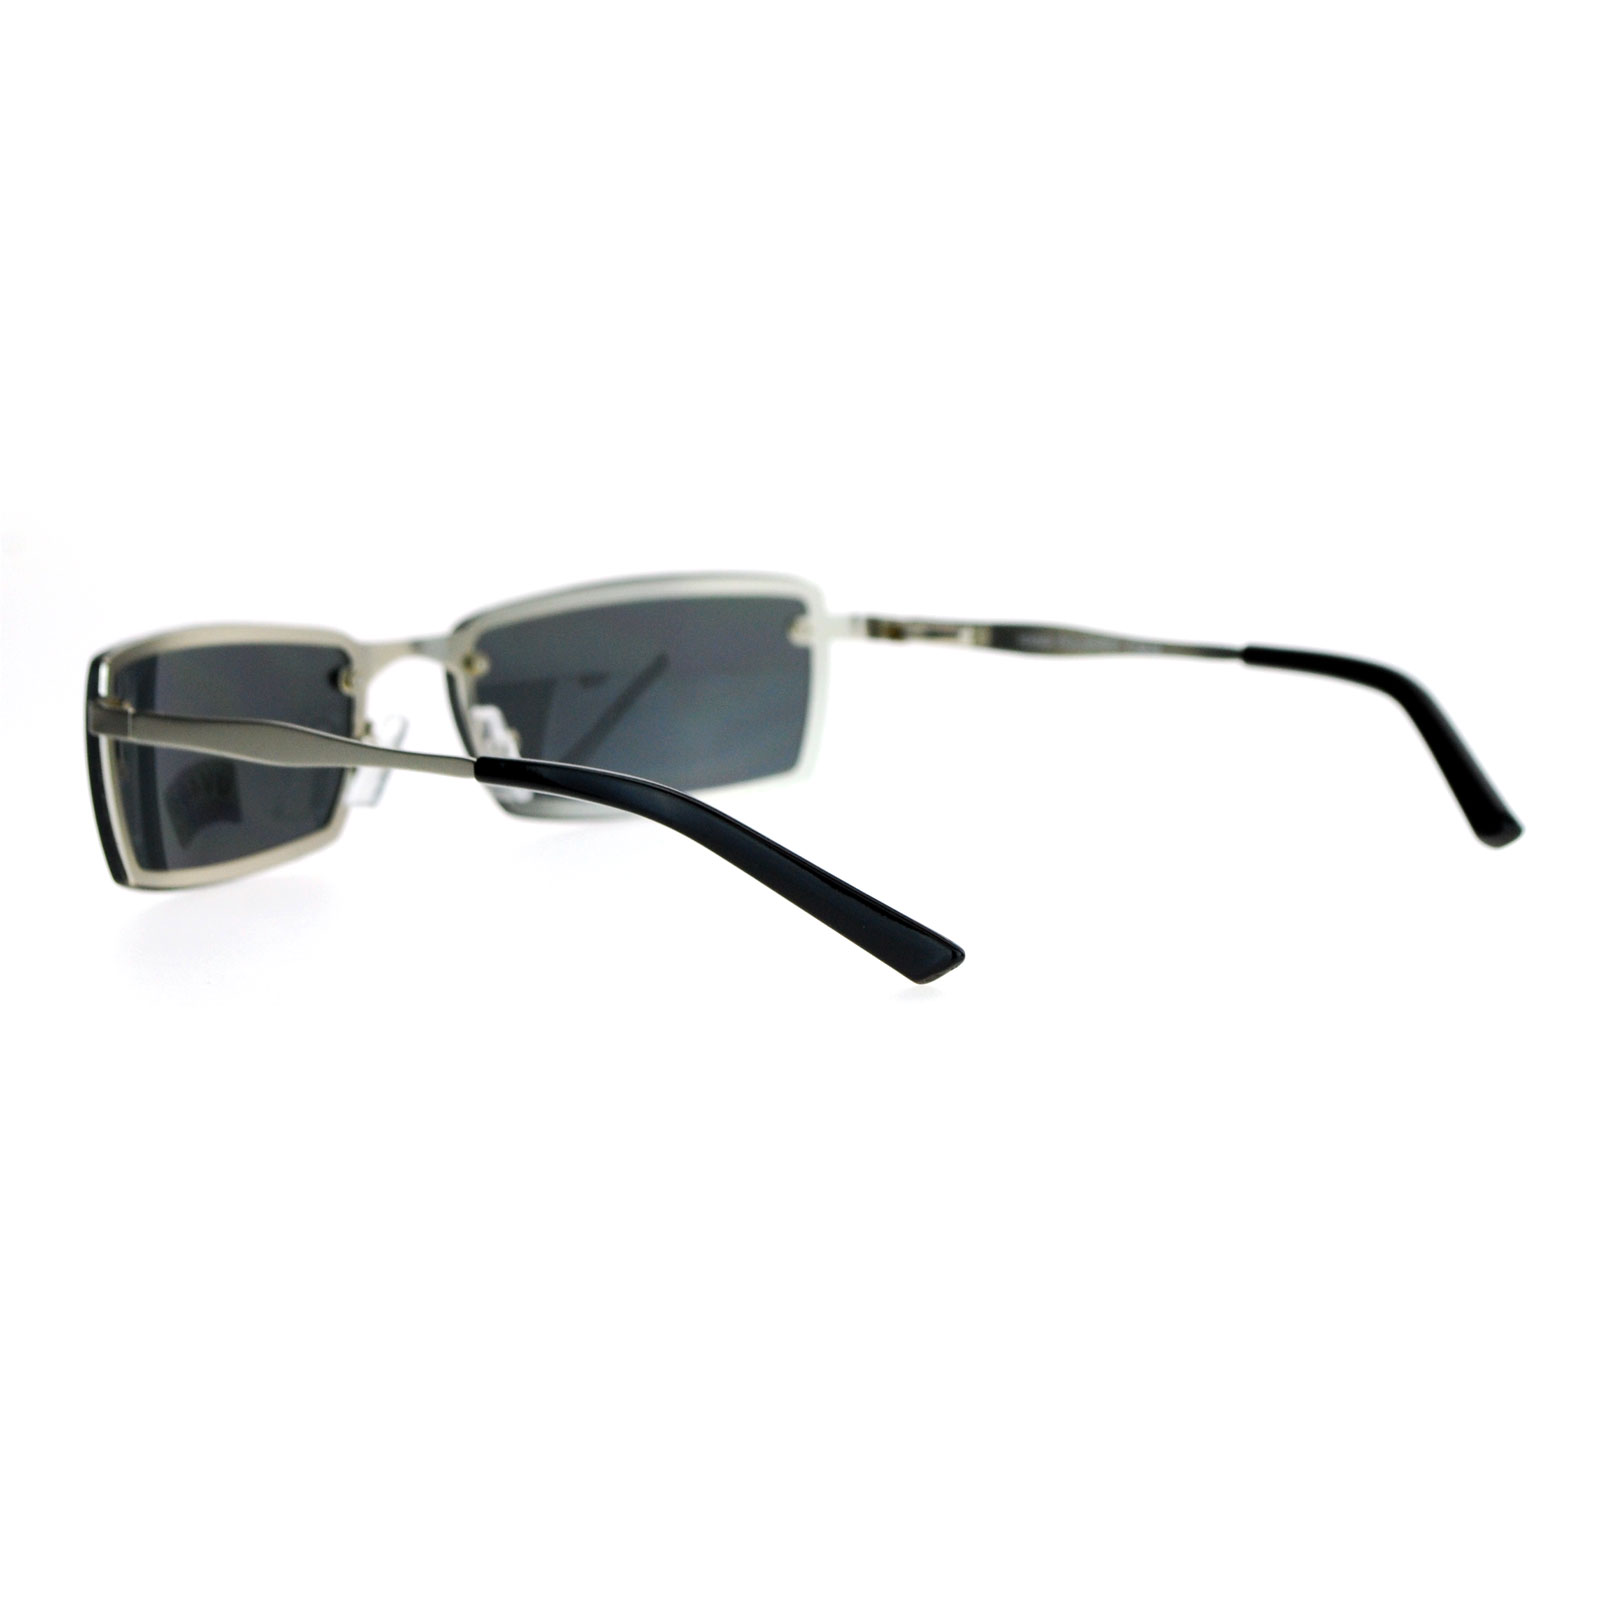 d0febb56a47 SA106-Mens-Rimless-Narrow-Rectangular-Agent-Sunglasses thumbnail 7